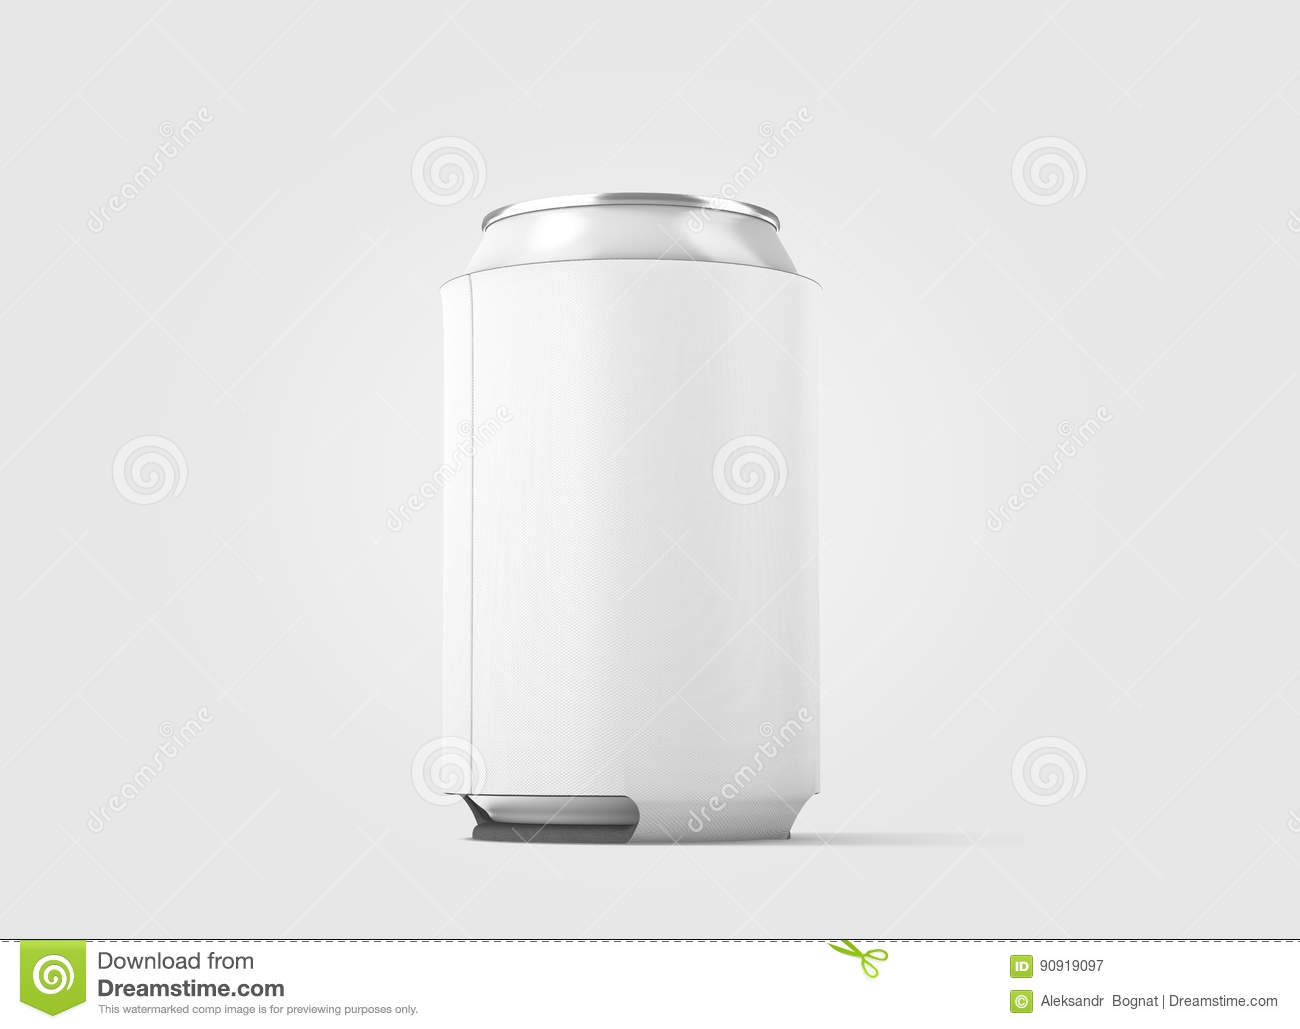 Blank White Collapsible Beer Can Koozie Mockup Isolated